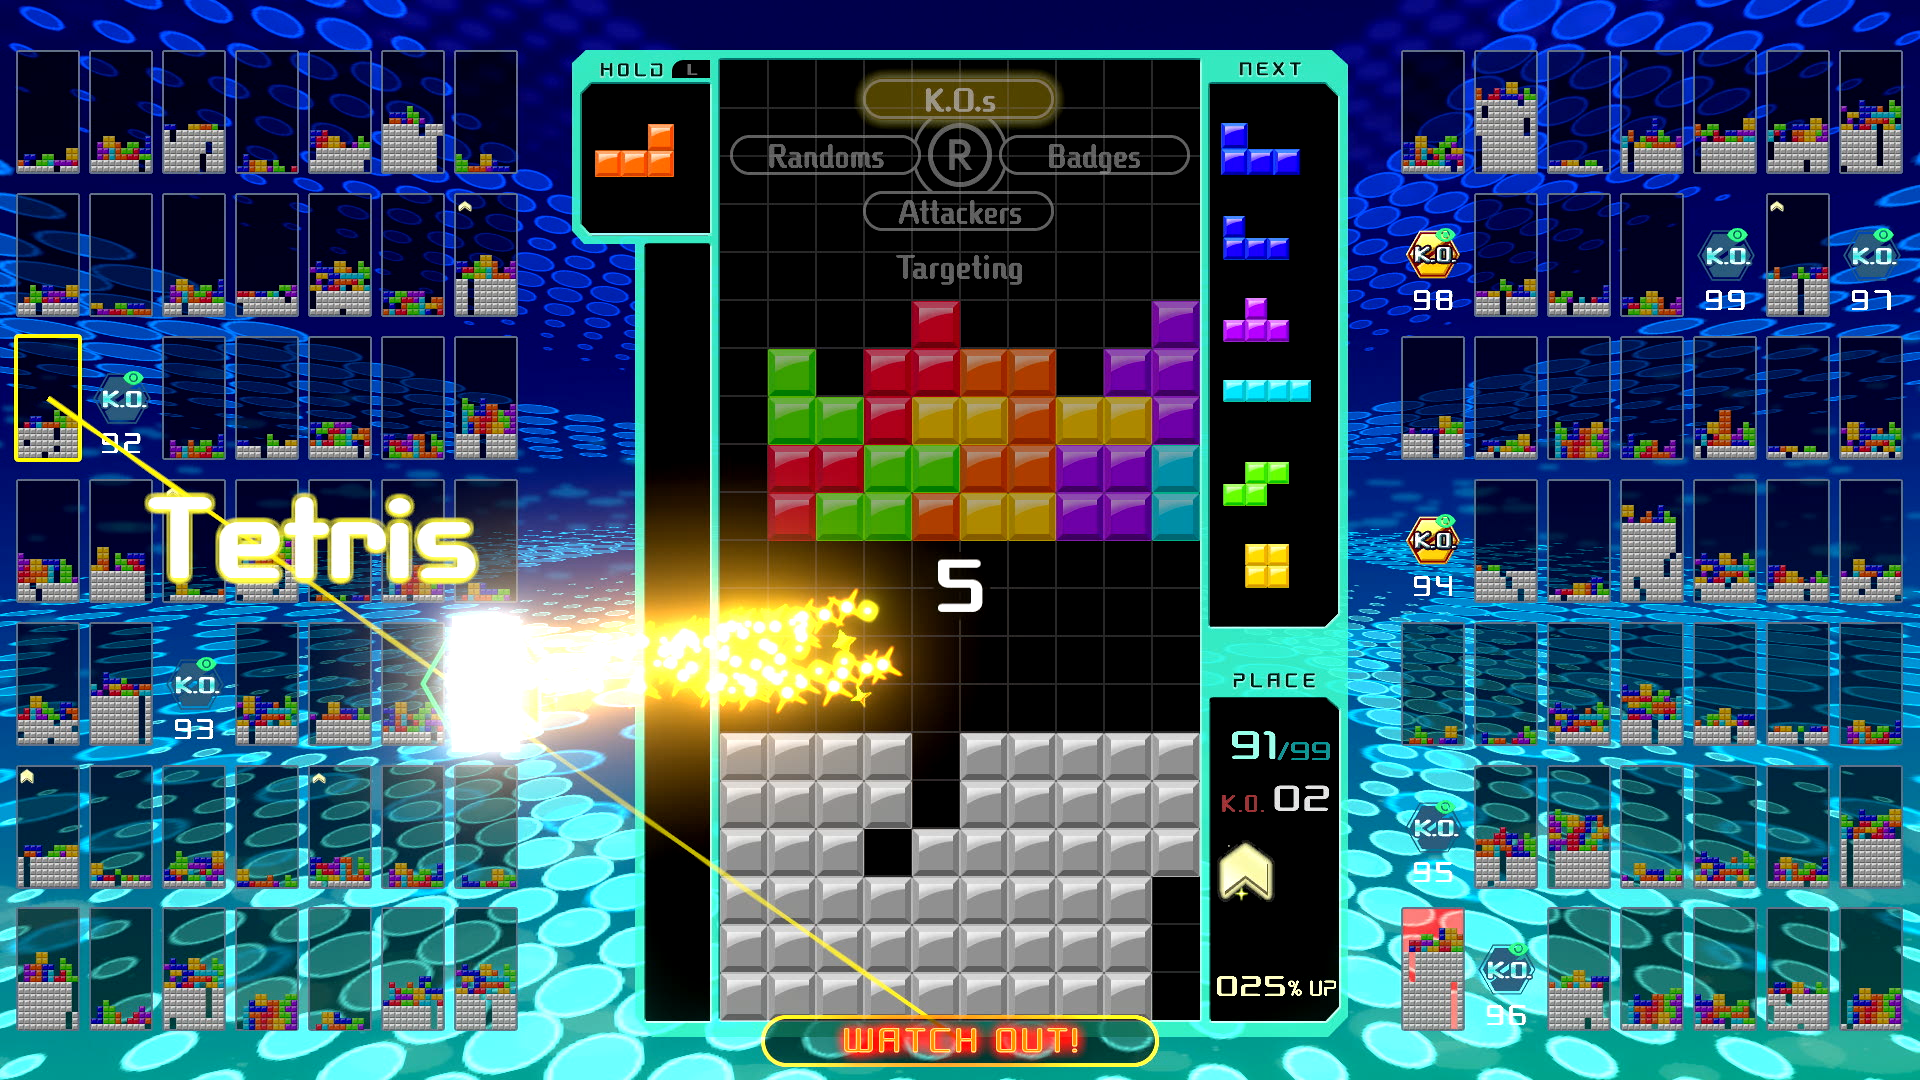 tetris 99 - top Nintendo Switch Games